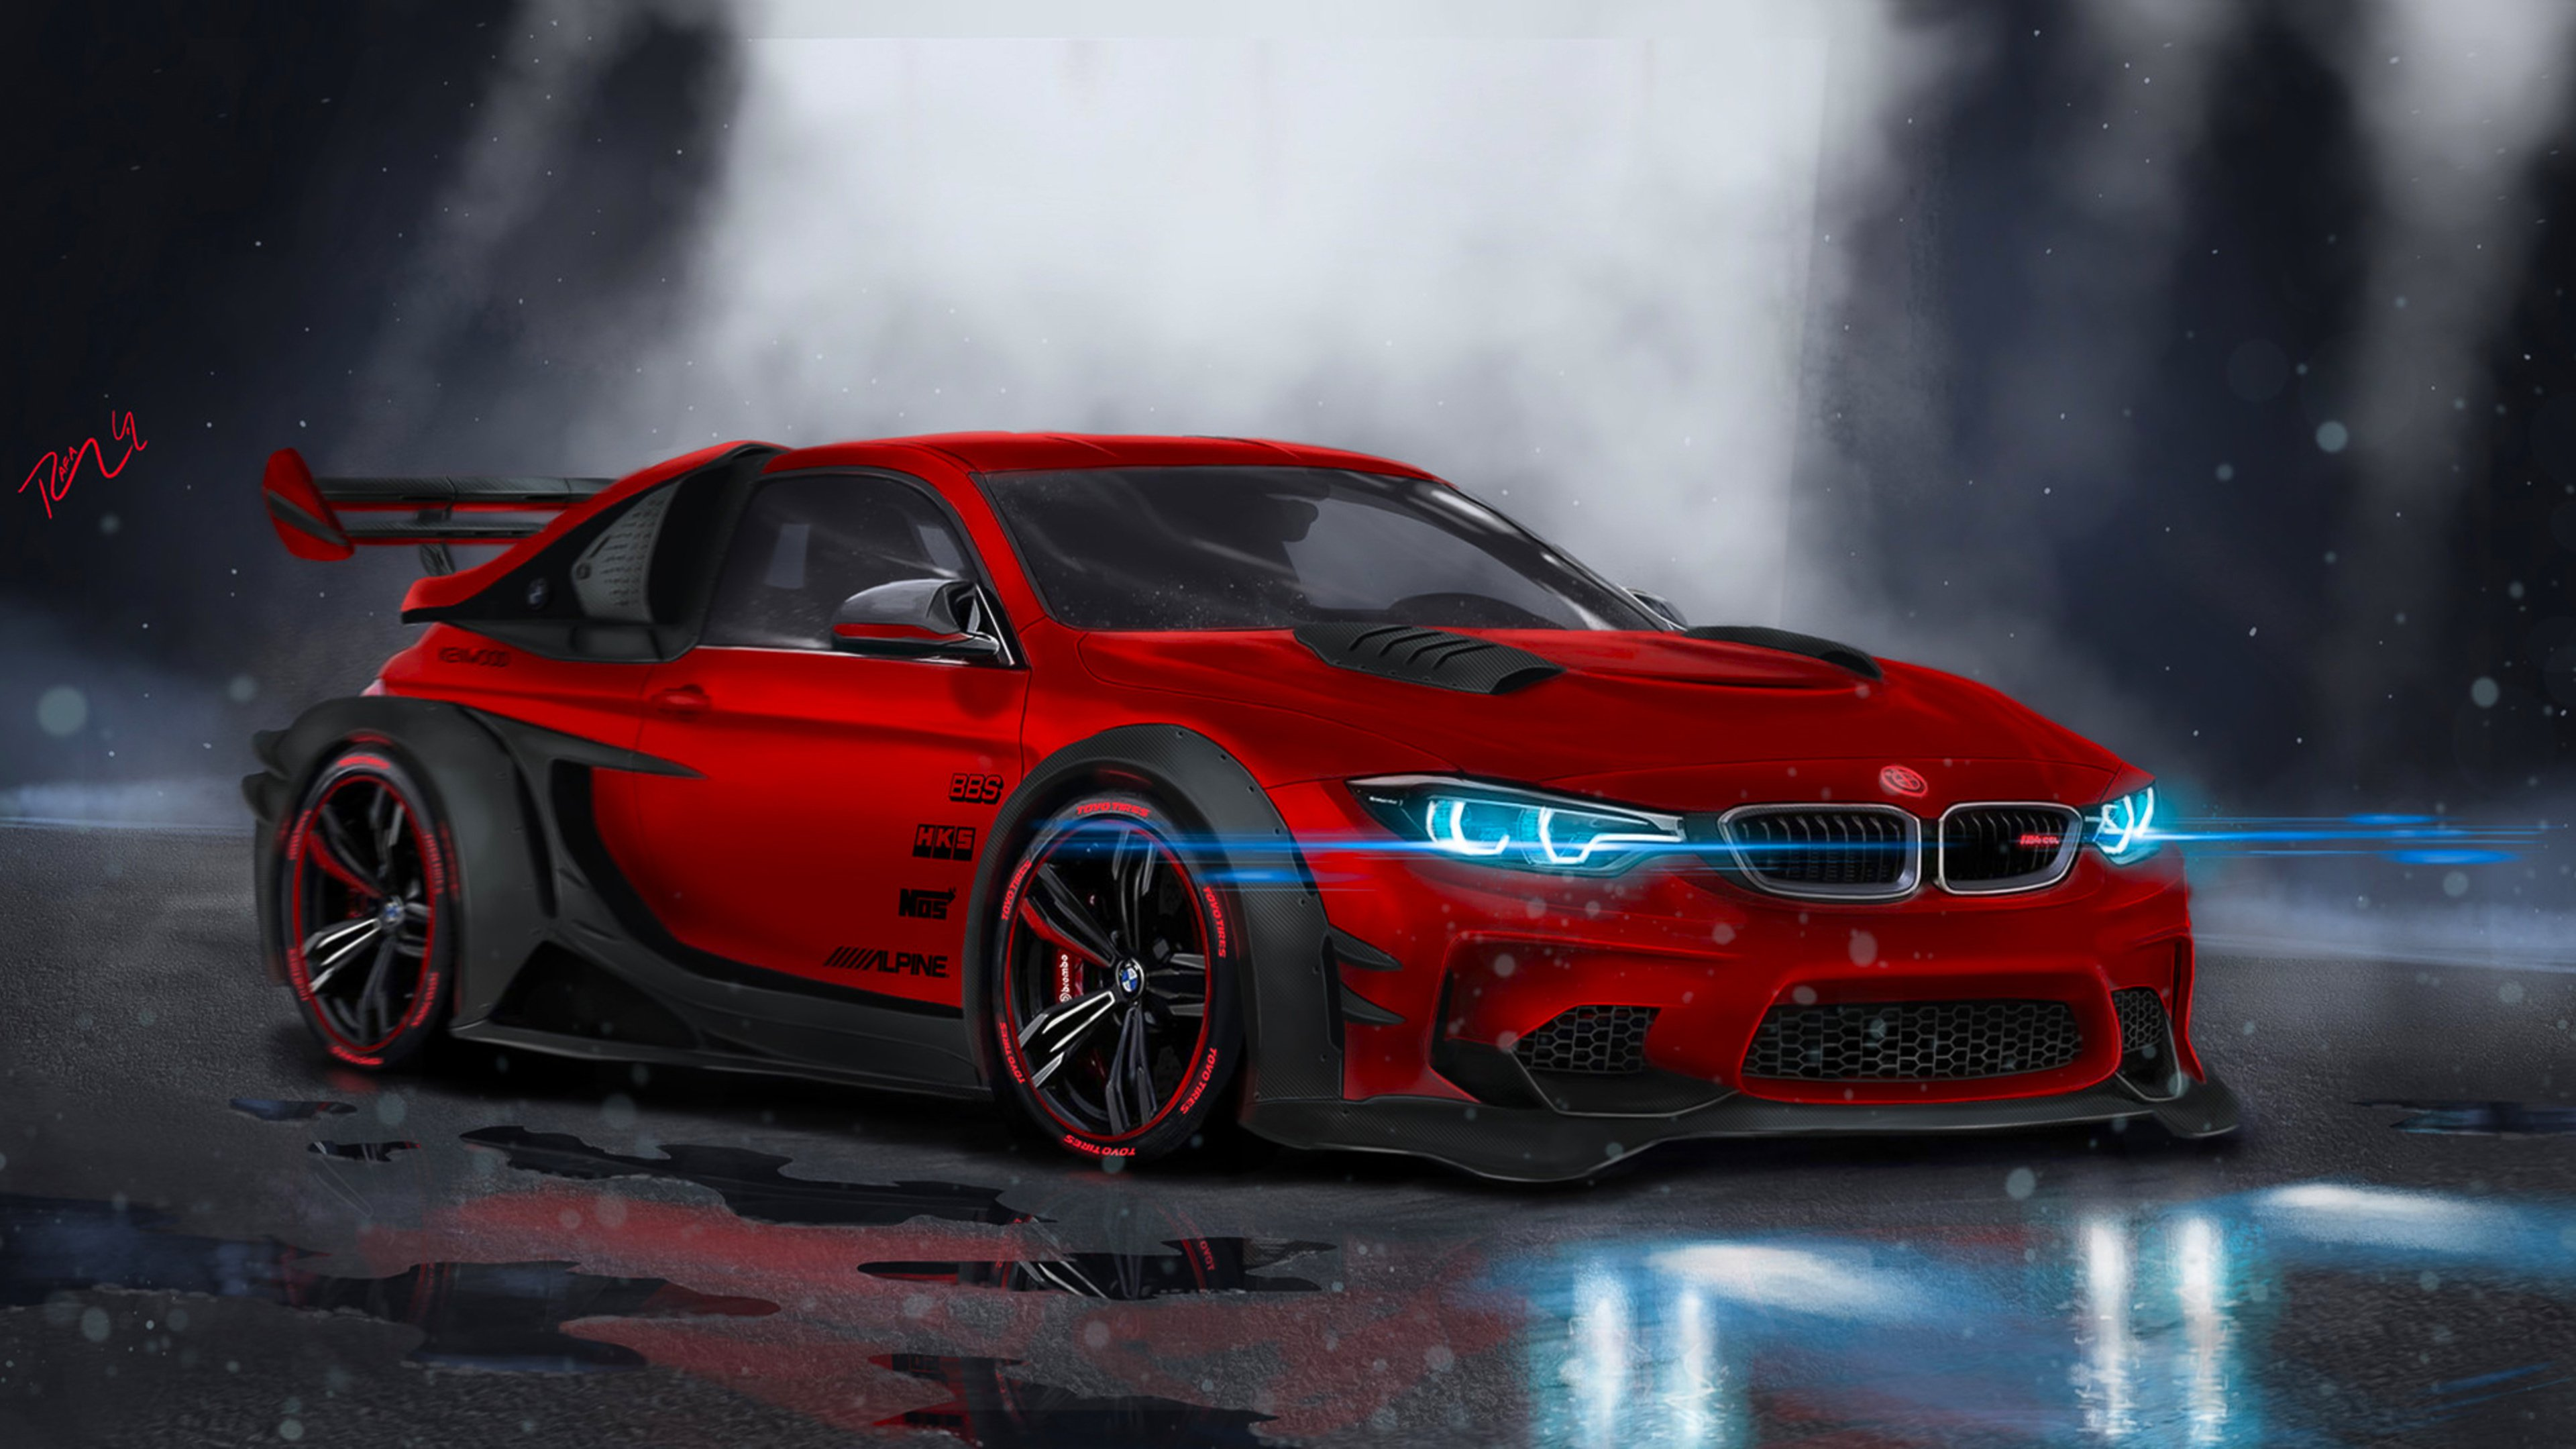 Cute Wallpapers 1366x768 Bmw M4 Highly Modified Hd Cars 4k Wallpapers Images